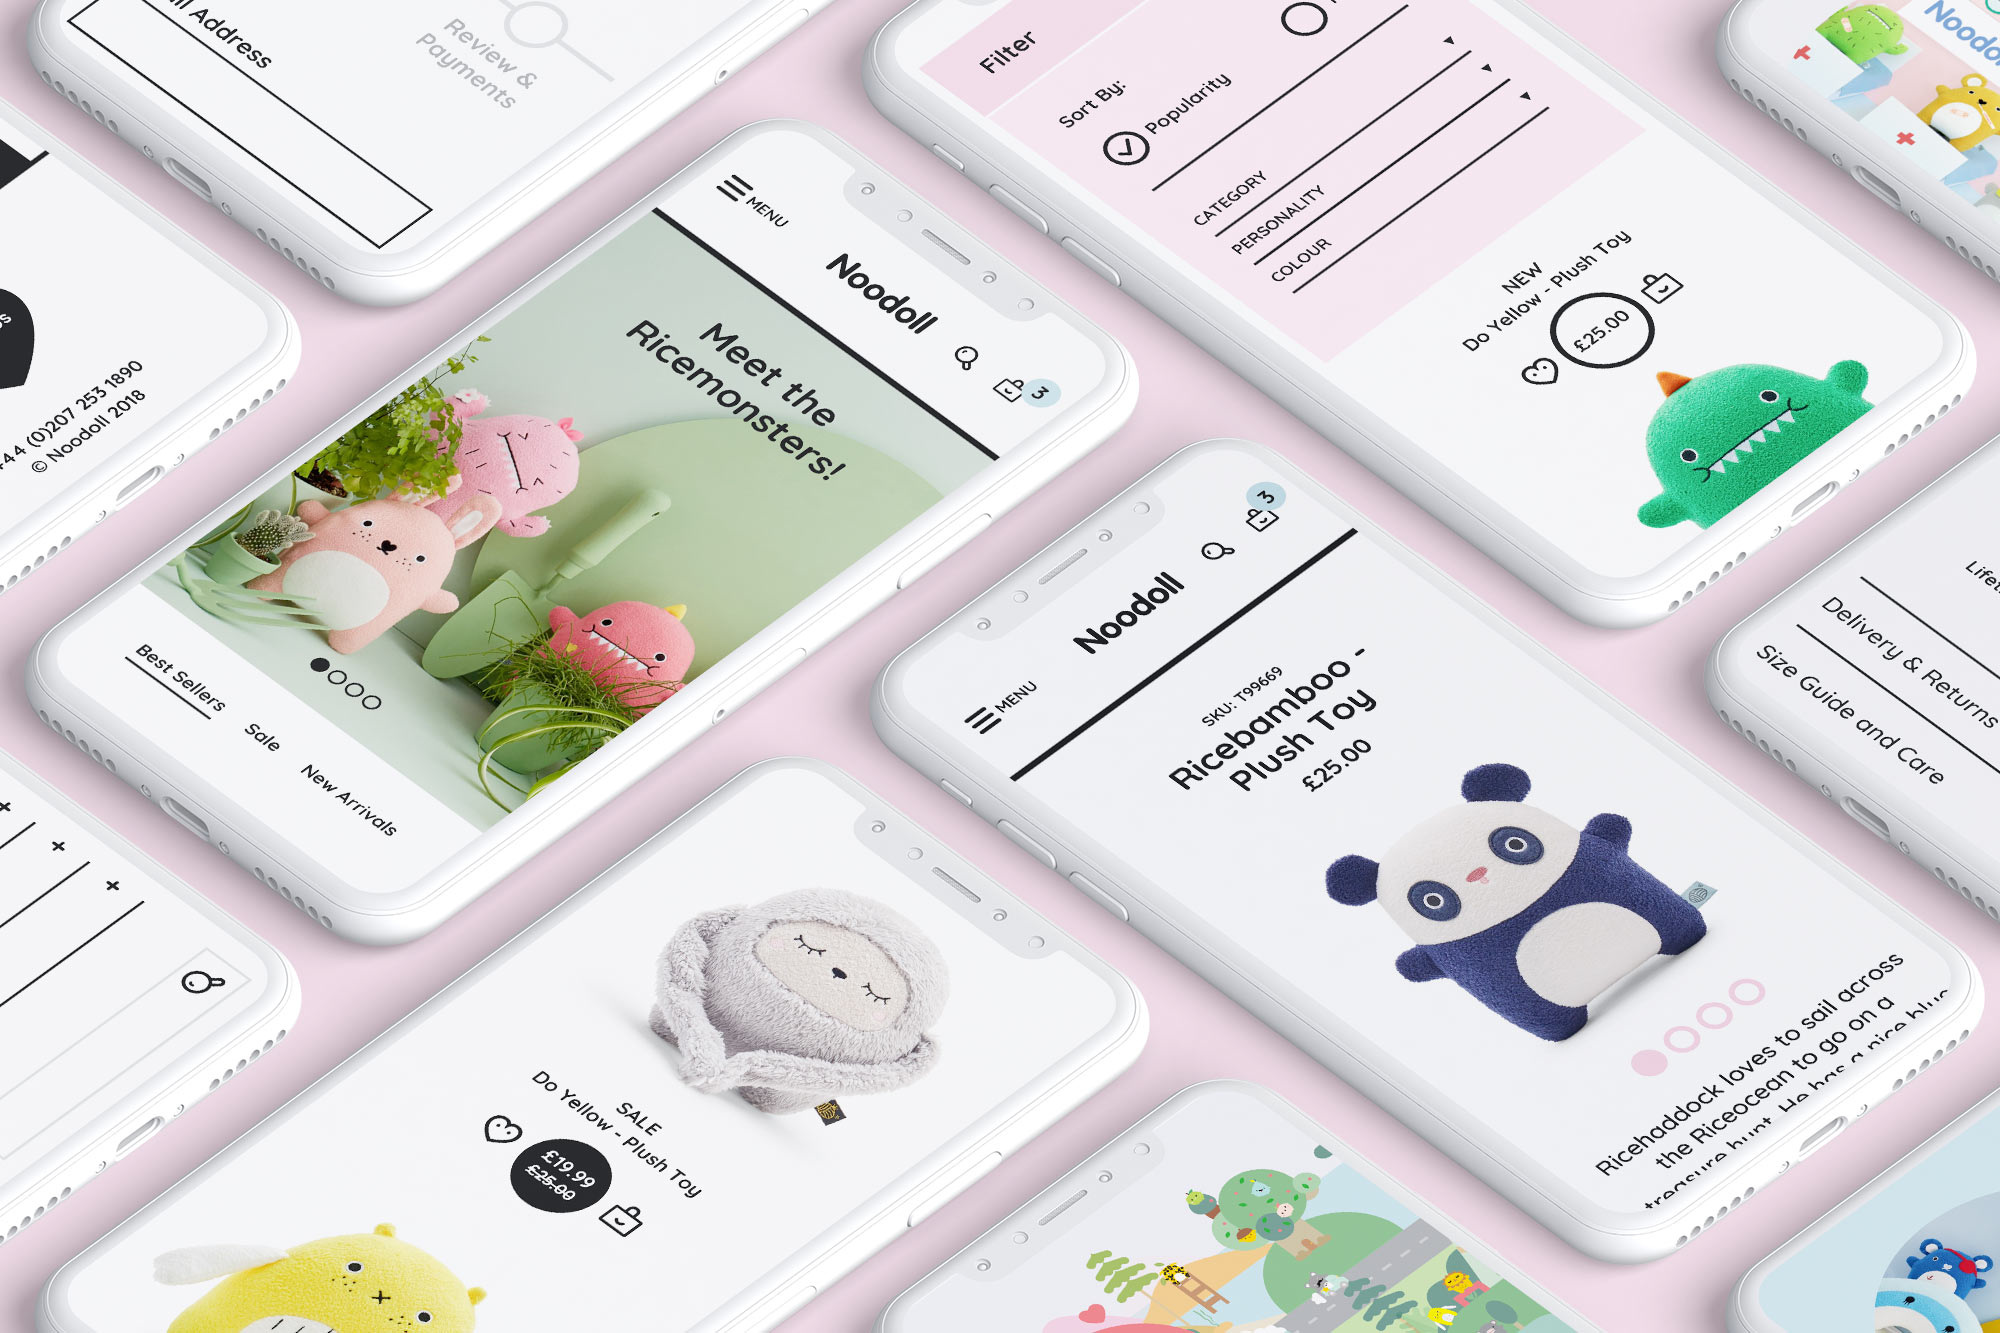 Noodoll eCommerce website design , Four Mopbile phones showing the home, product, cart pages and menu